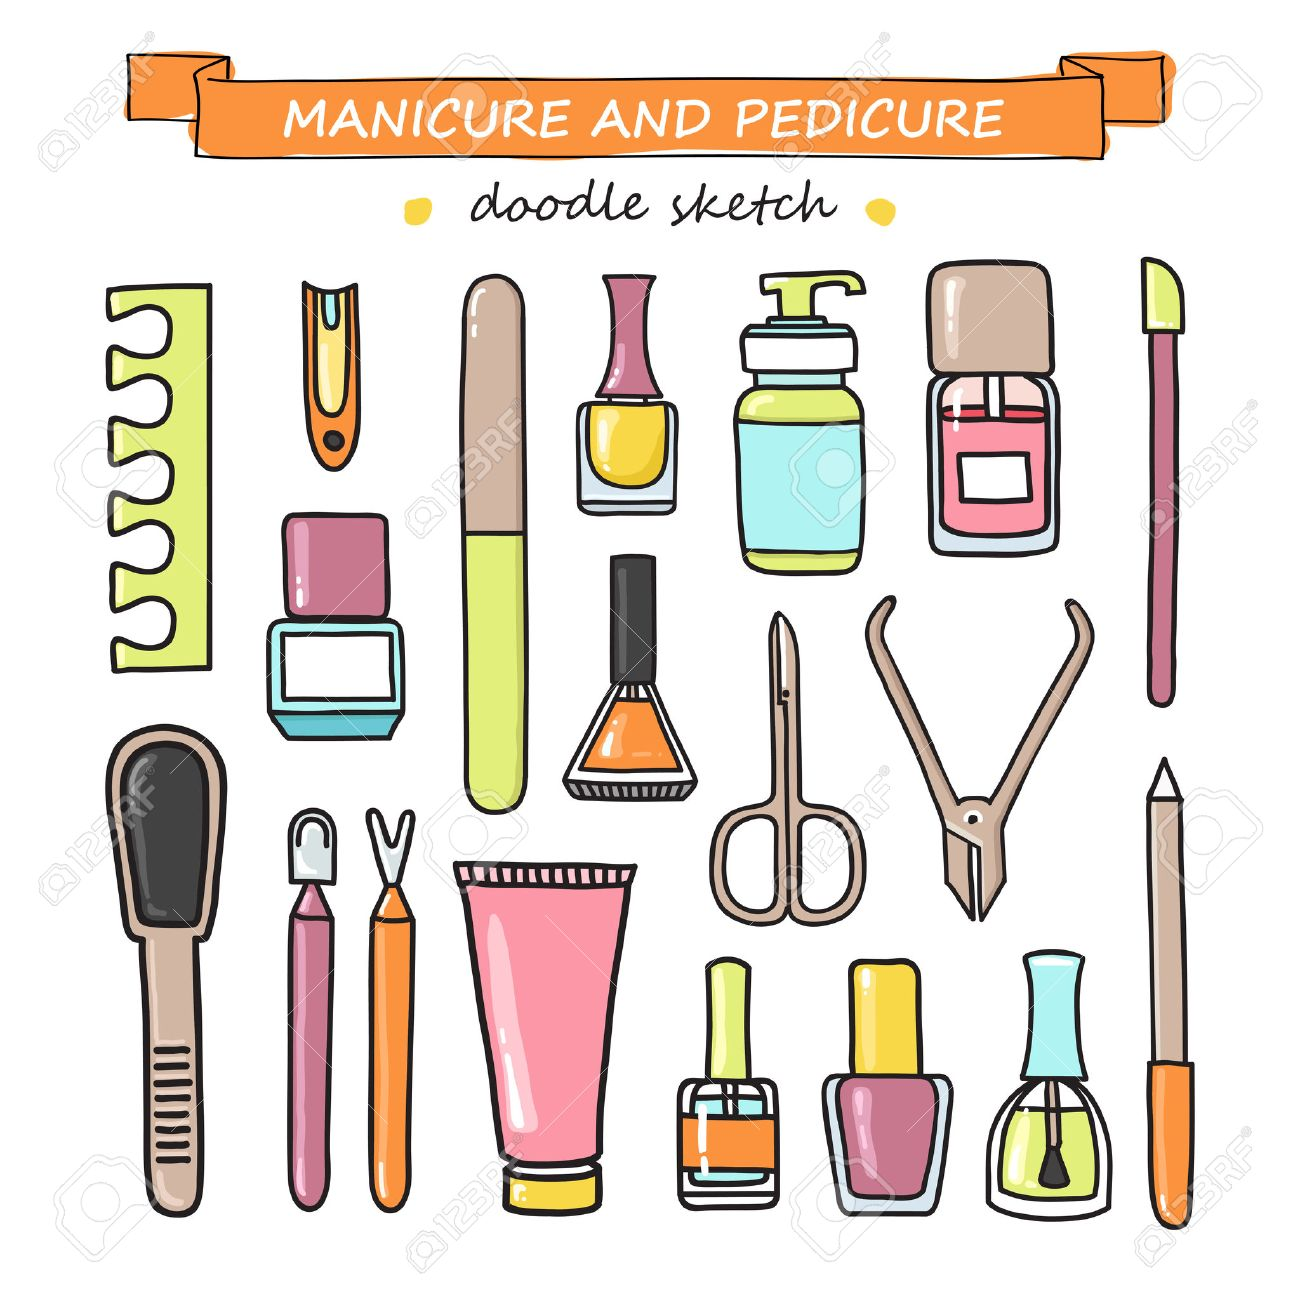 What Are The Materials And Equipment Used In Manicure And Pedicure ...